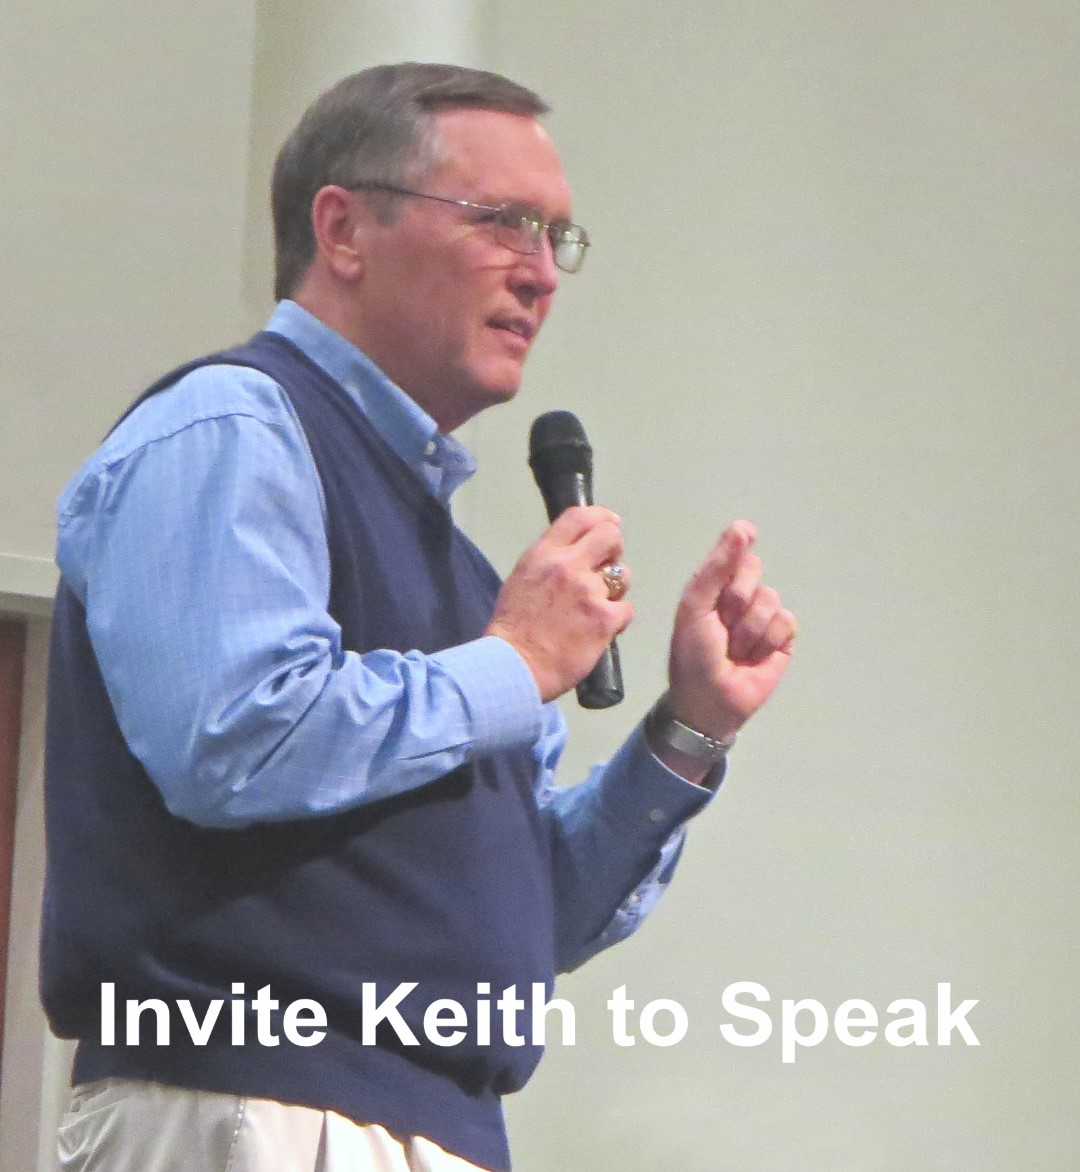 invitekeith